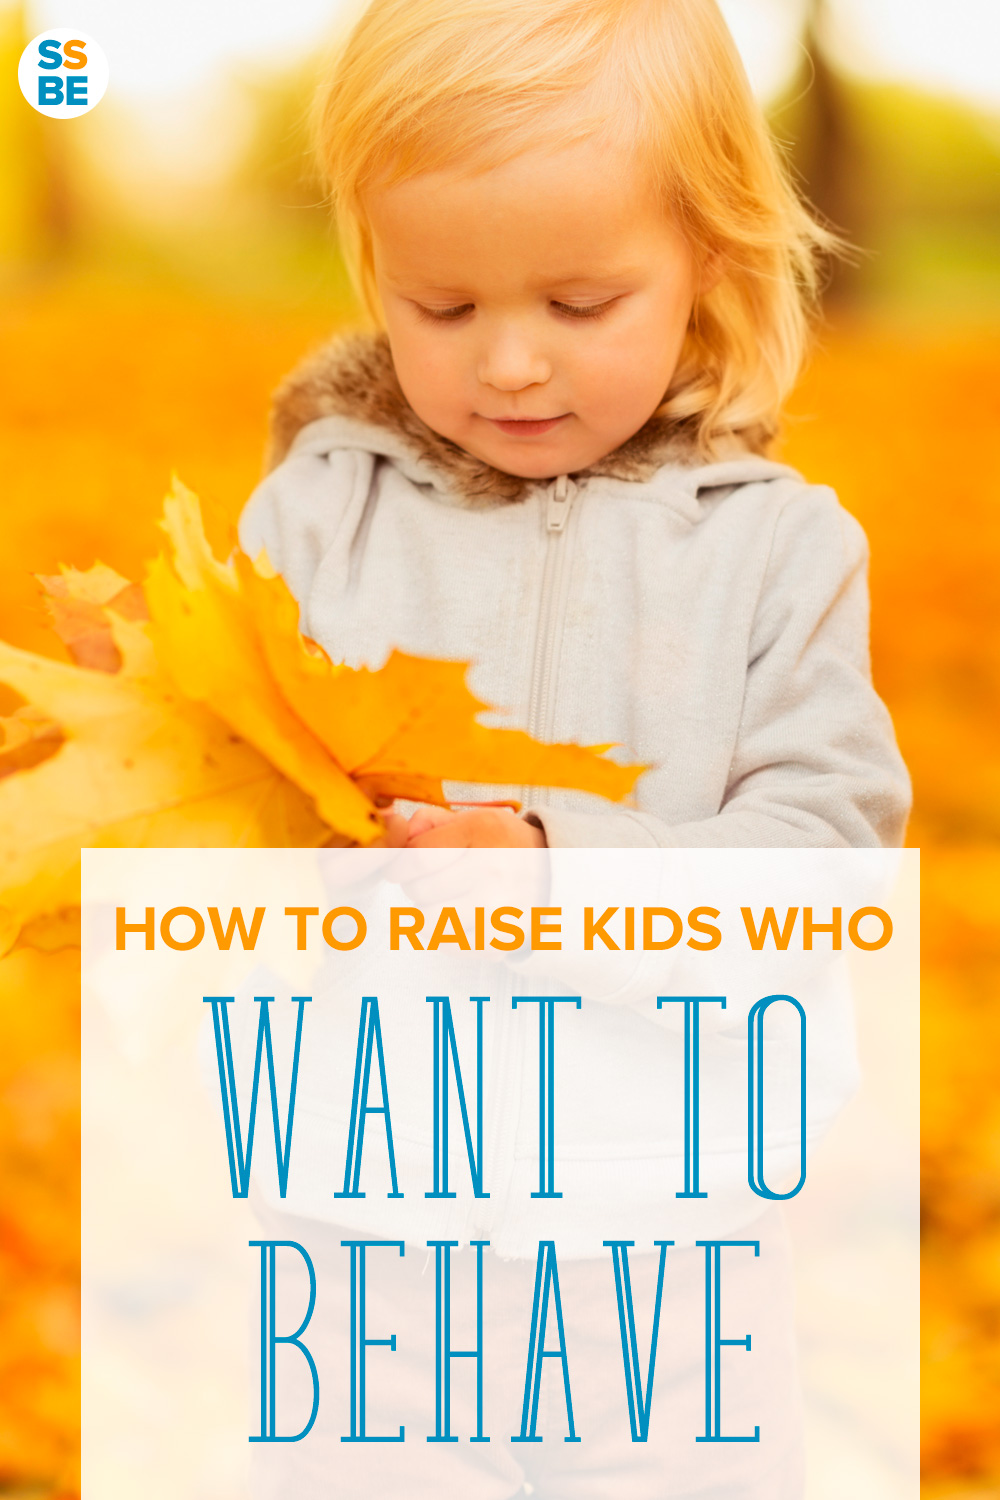 It's one thing for children to behave, but how do you help your child WANT to behave? Here are tips to raise kids who want to behave—even when no is looking. Even includes a FREE quick guide to help you figure out what to do when tantrums strike!